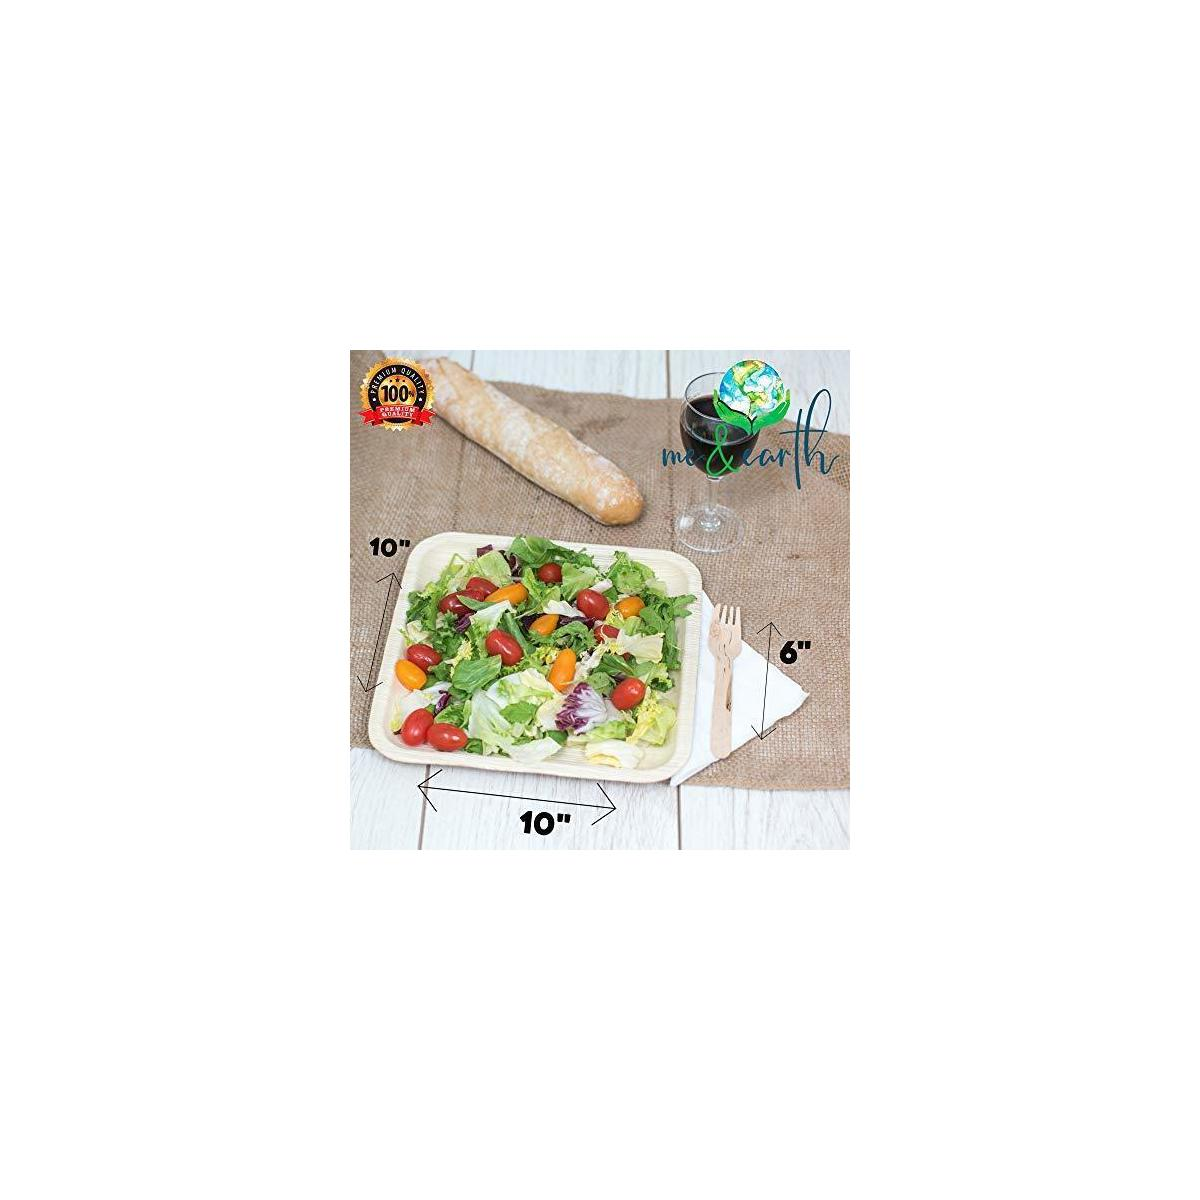 Me&Earth Bamboo Style Plates 10-Inch Disposable Square Palm Leaf Plate Set (90 Pack) Includes 30 6-Inch Birch Wood Forks and 30 Napkins - Eco-Friendly Biodegradable, Compostable Plates…